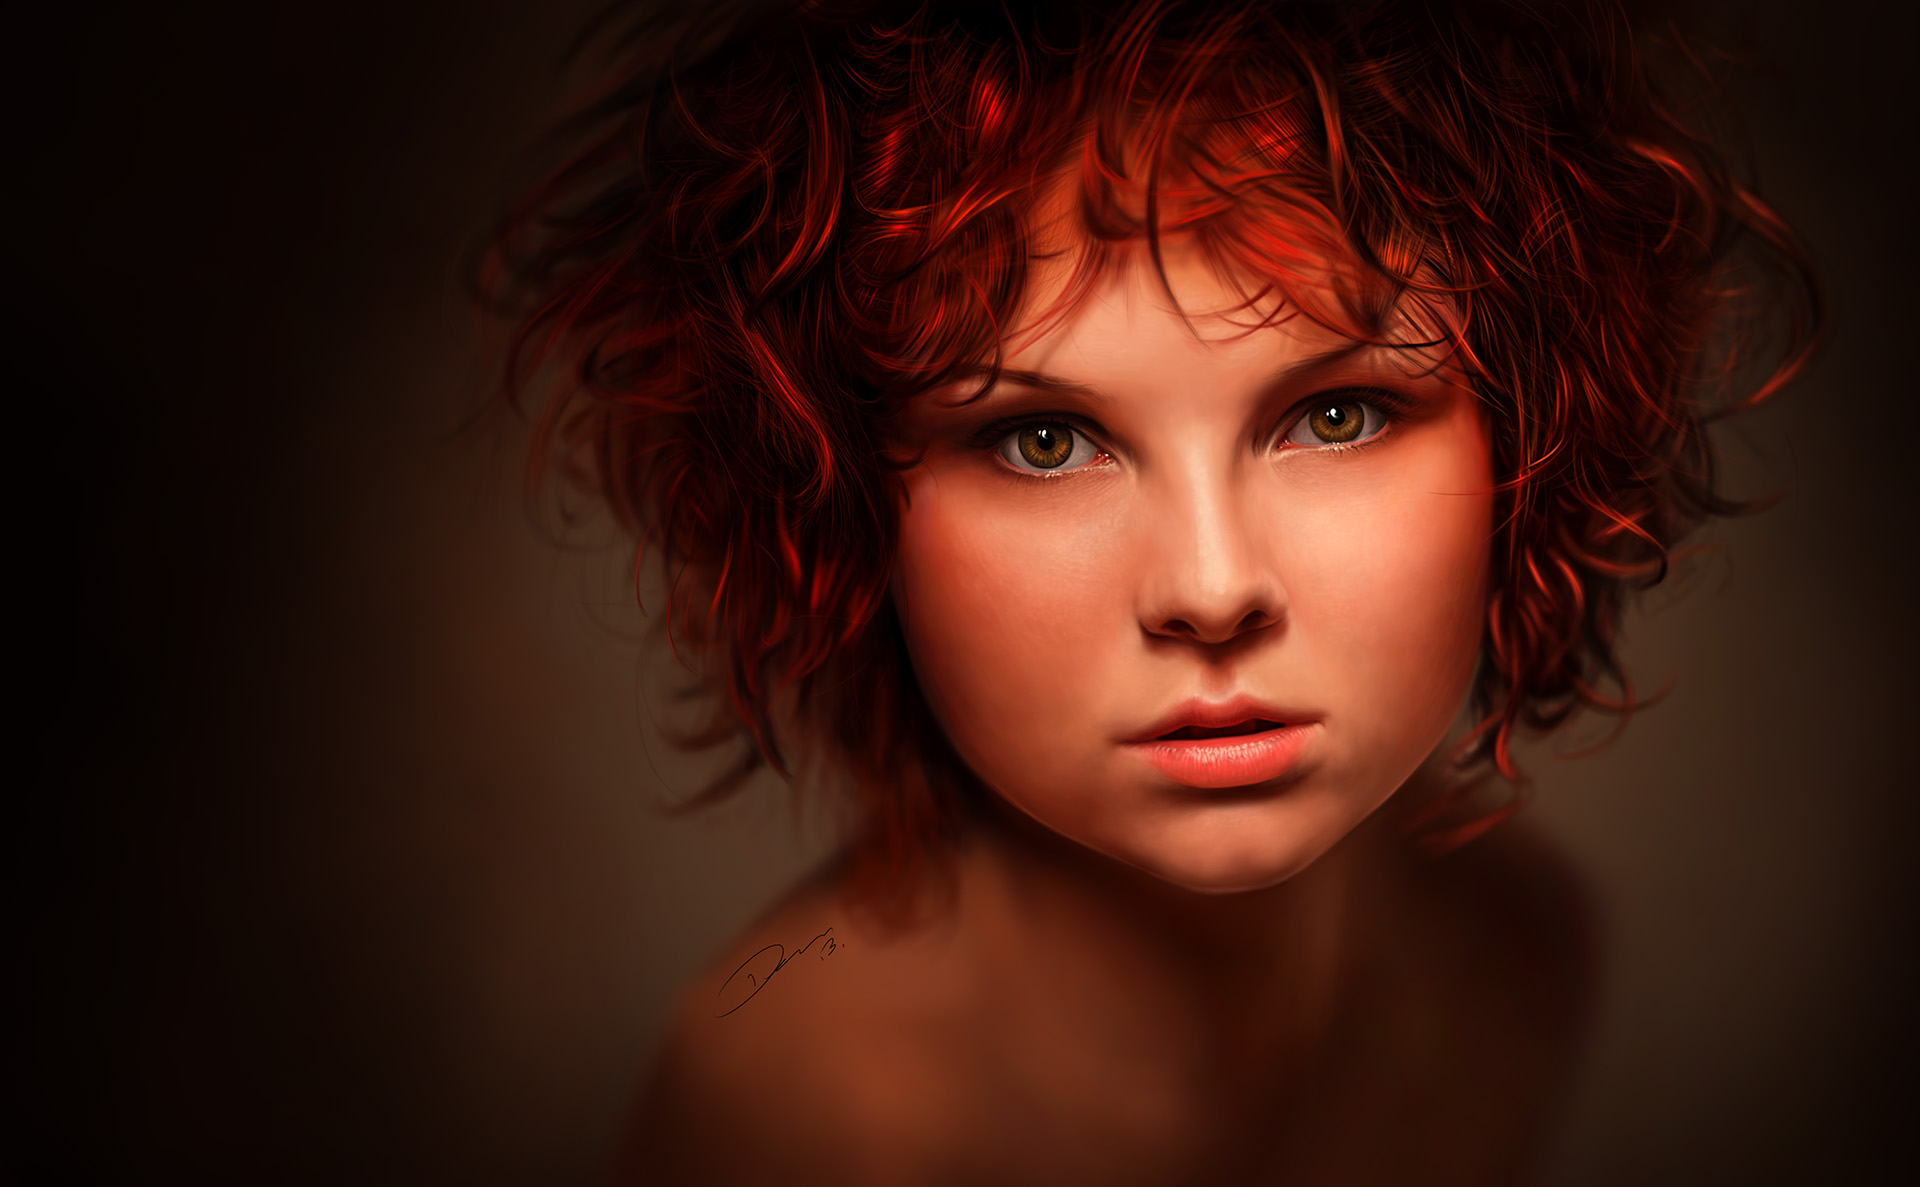 Redhead - Digital Painting by Packwood